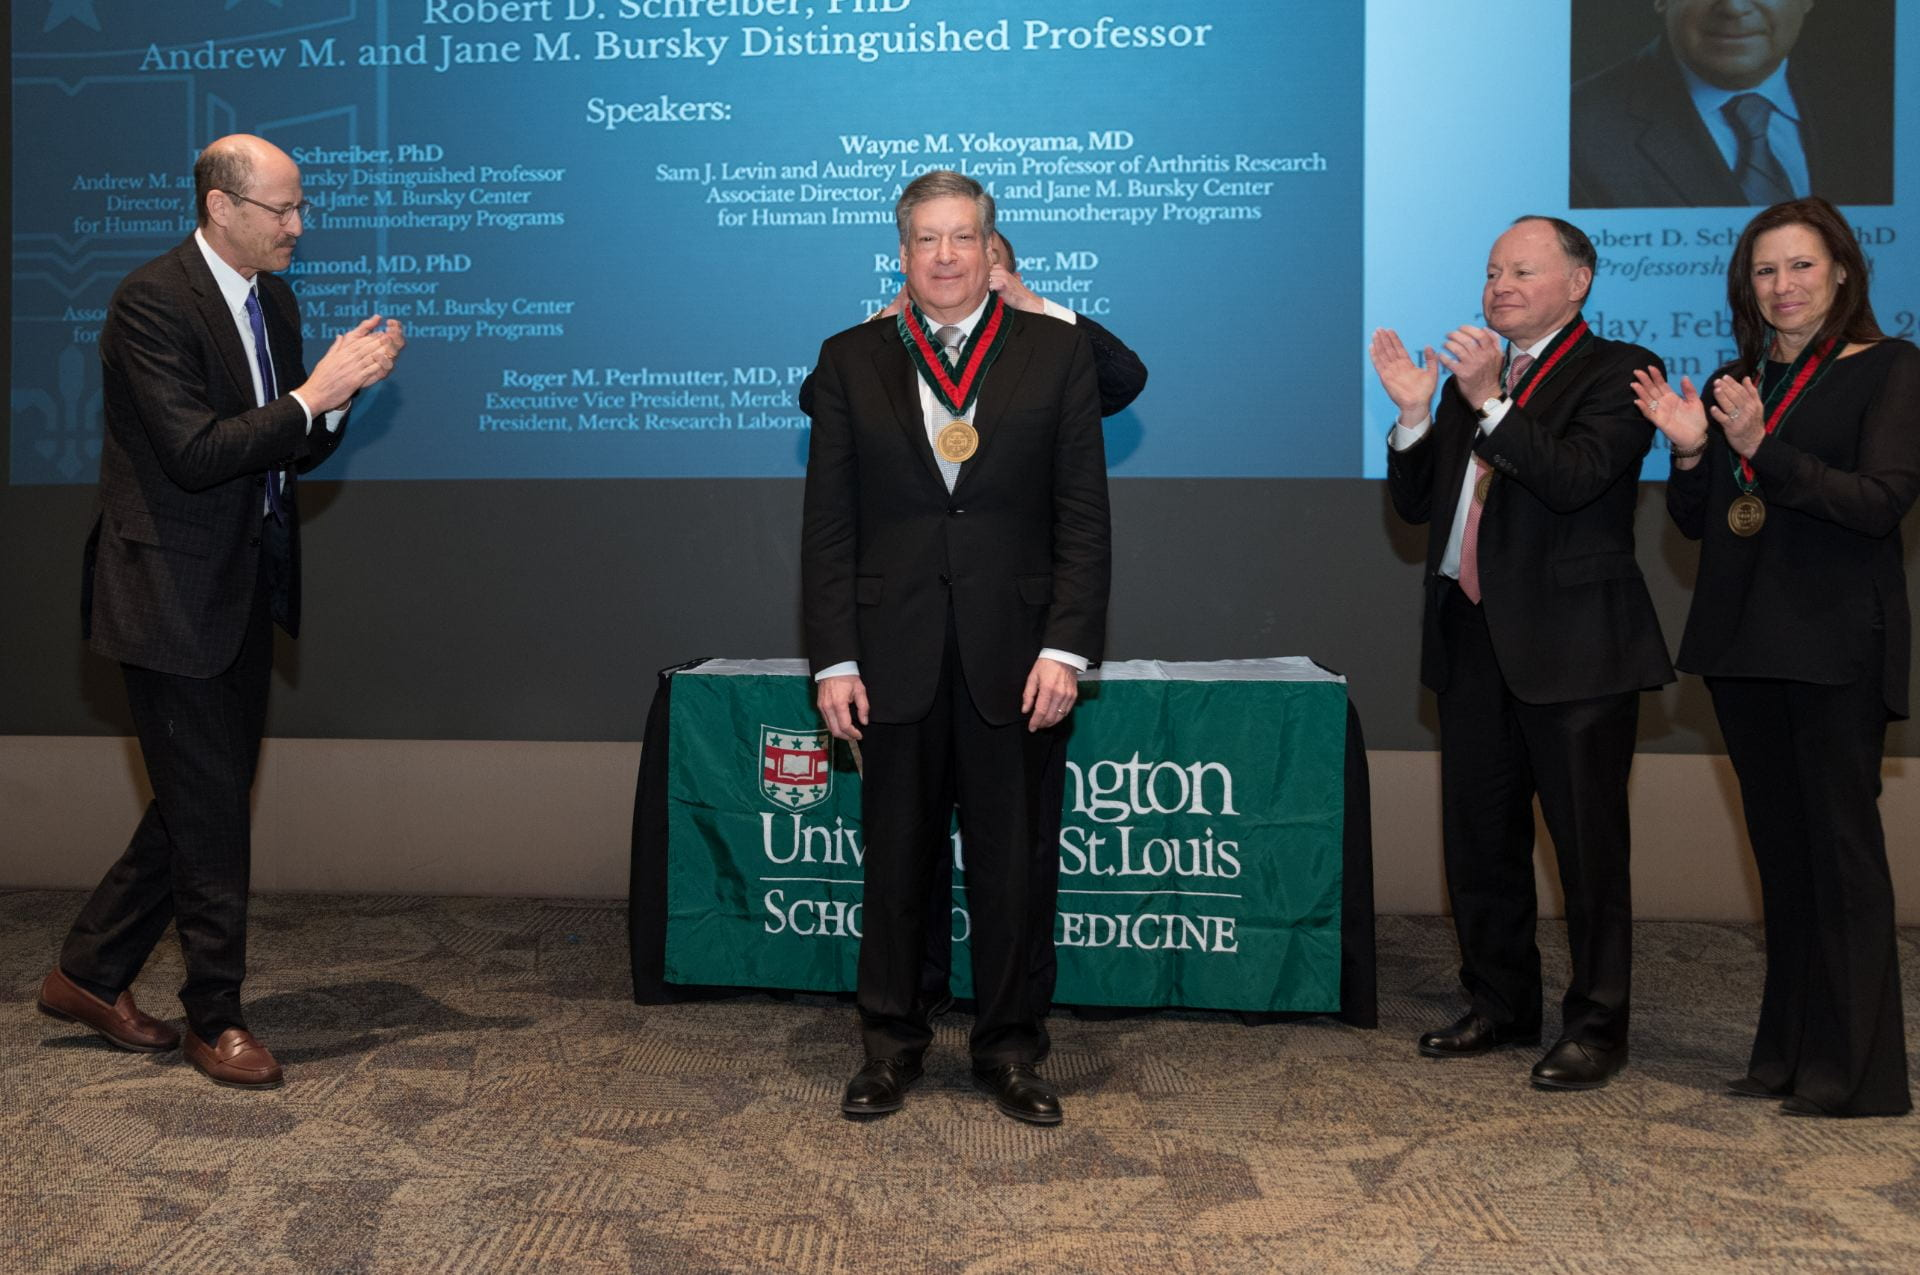 Chancellor Wrighton bestows upon Dr. Robert D. Schreiber the Andrew M. and Jane M. Bursky Distinguished Professor medallion.